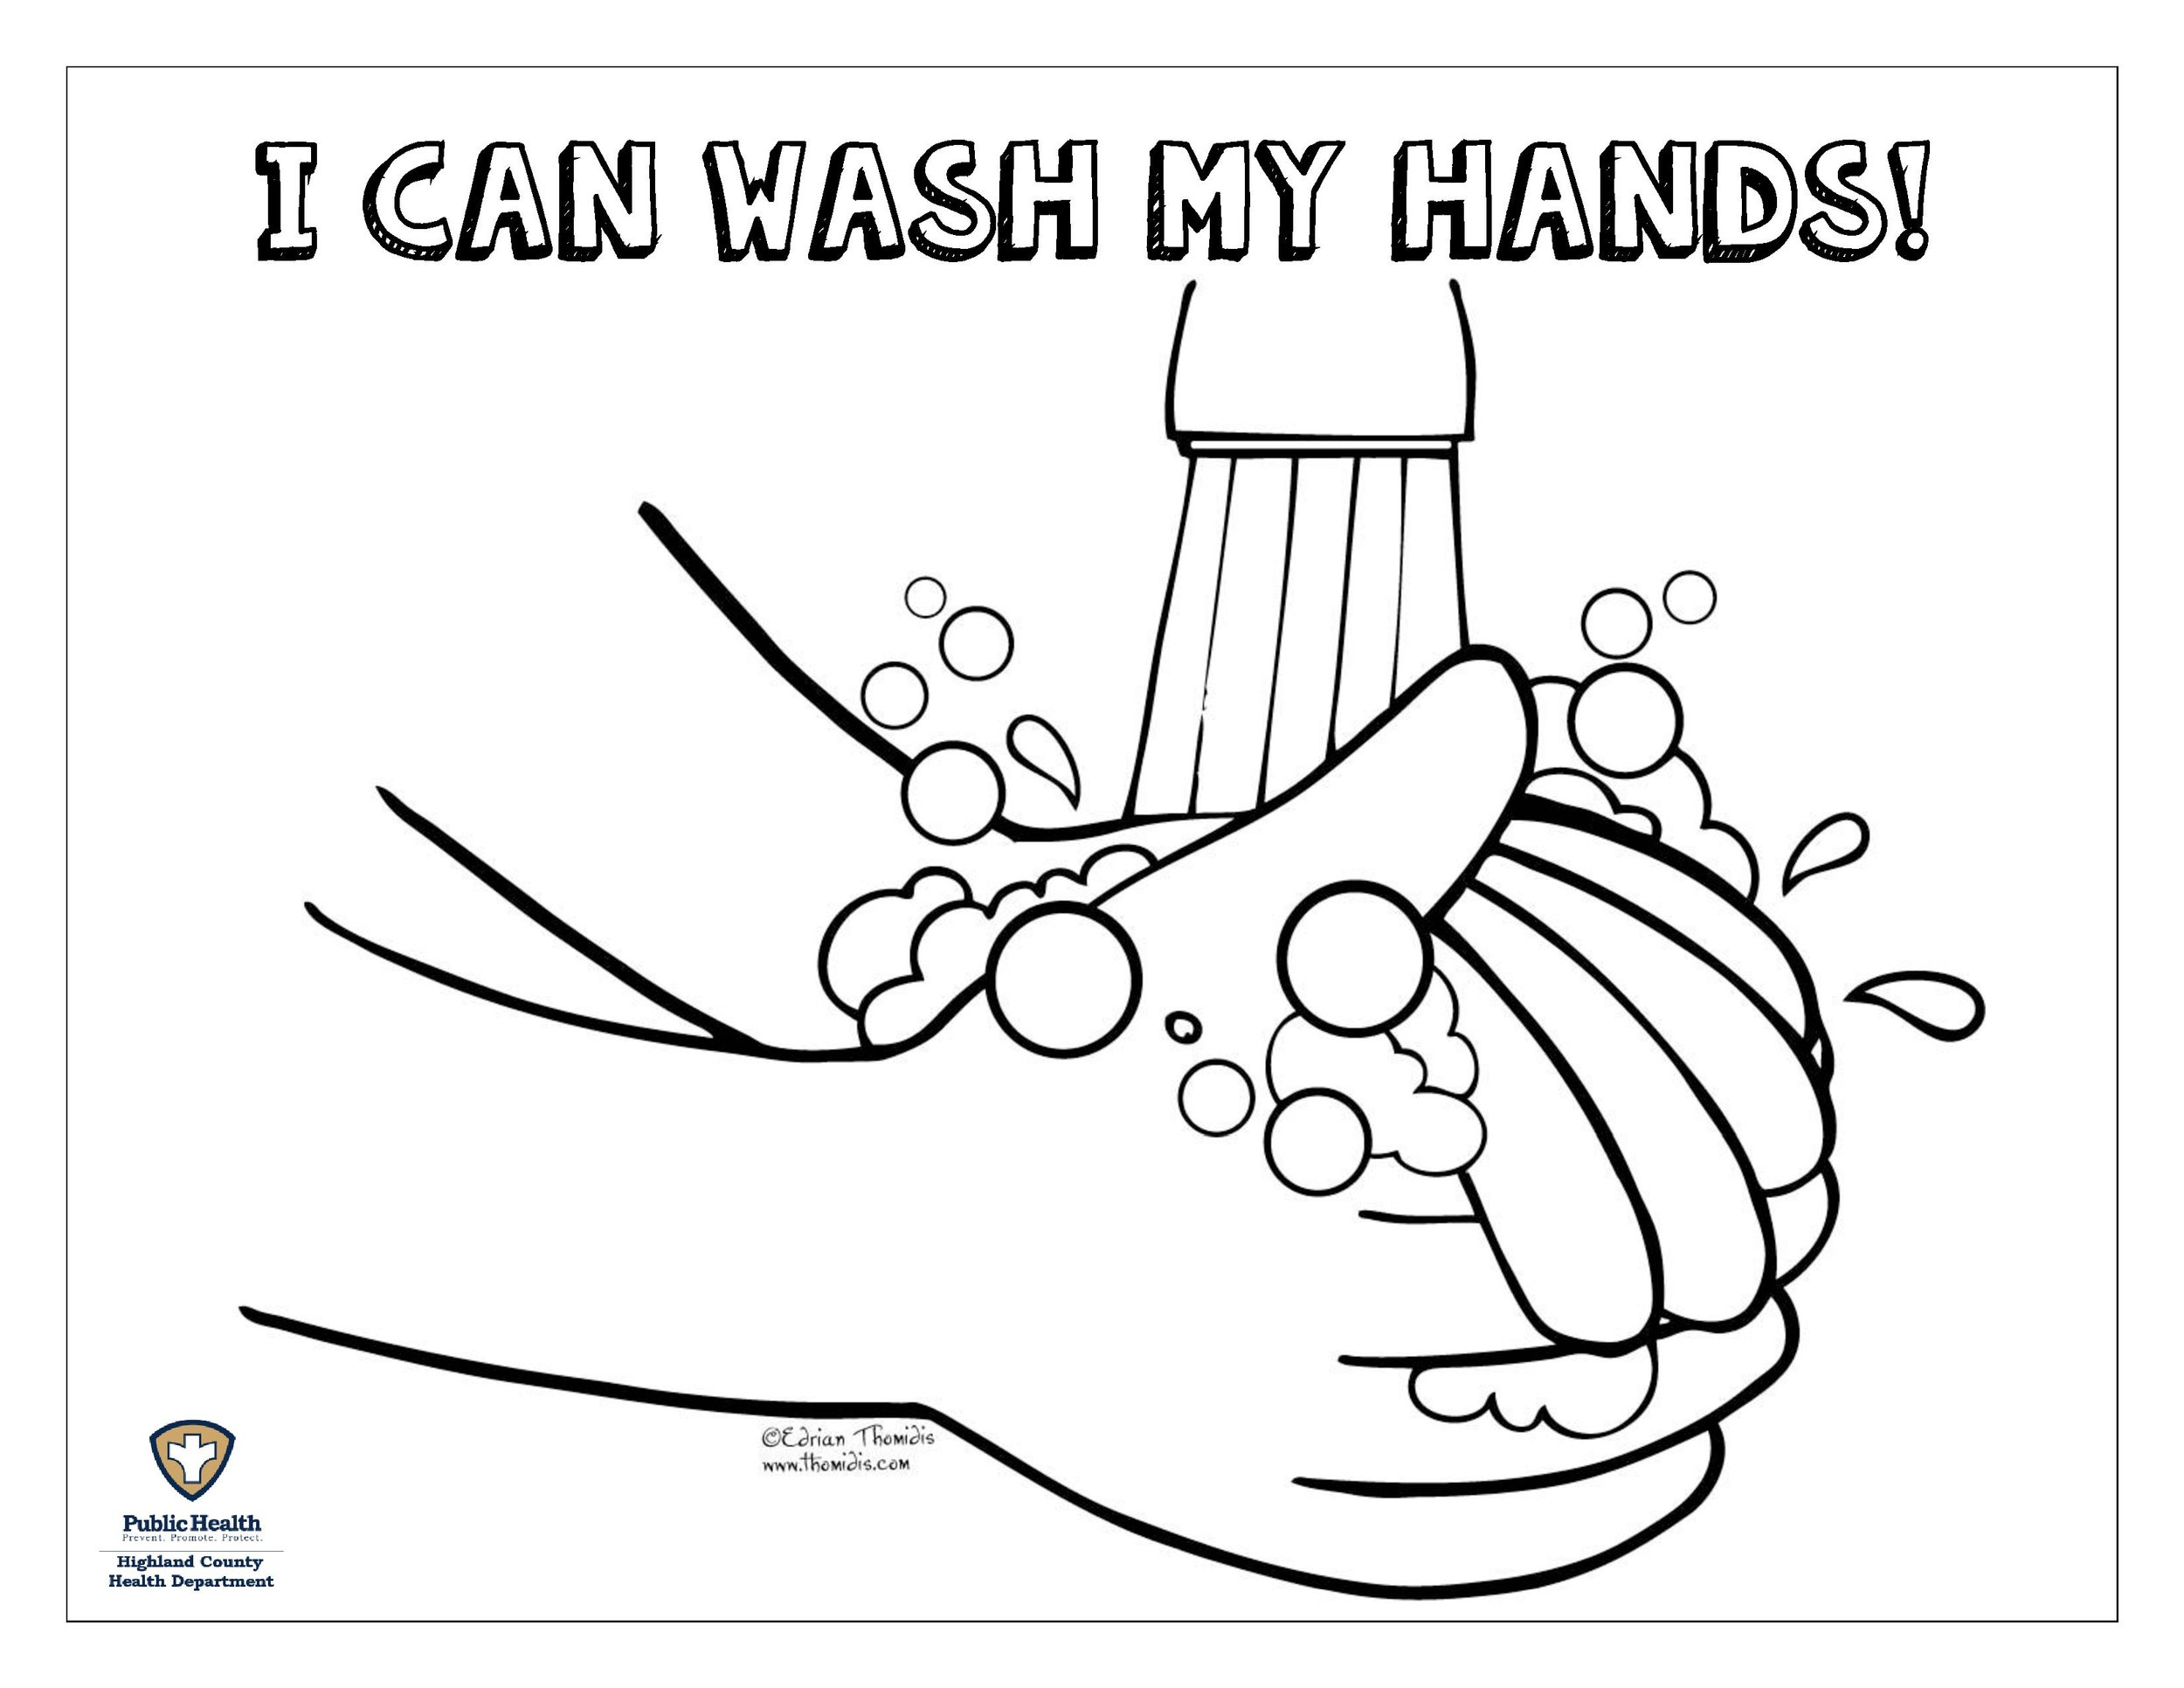 Hand Washing Coloring Page.docx-page-001.jpg